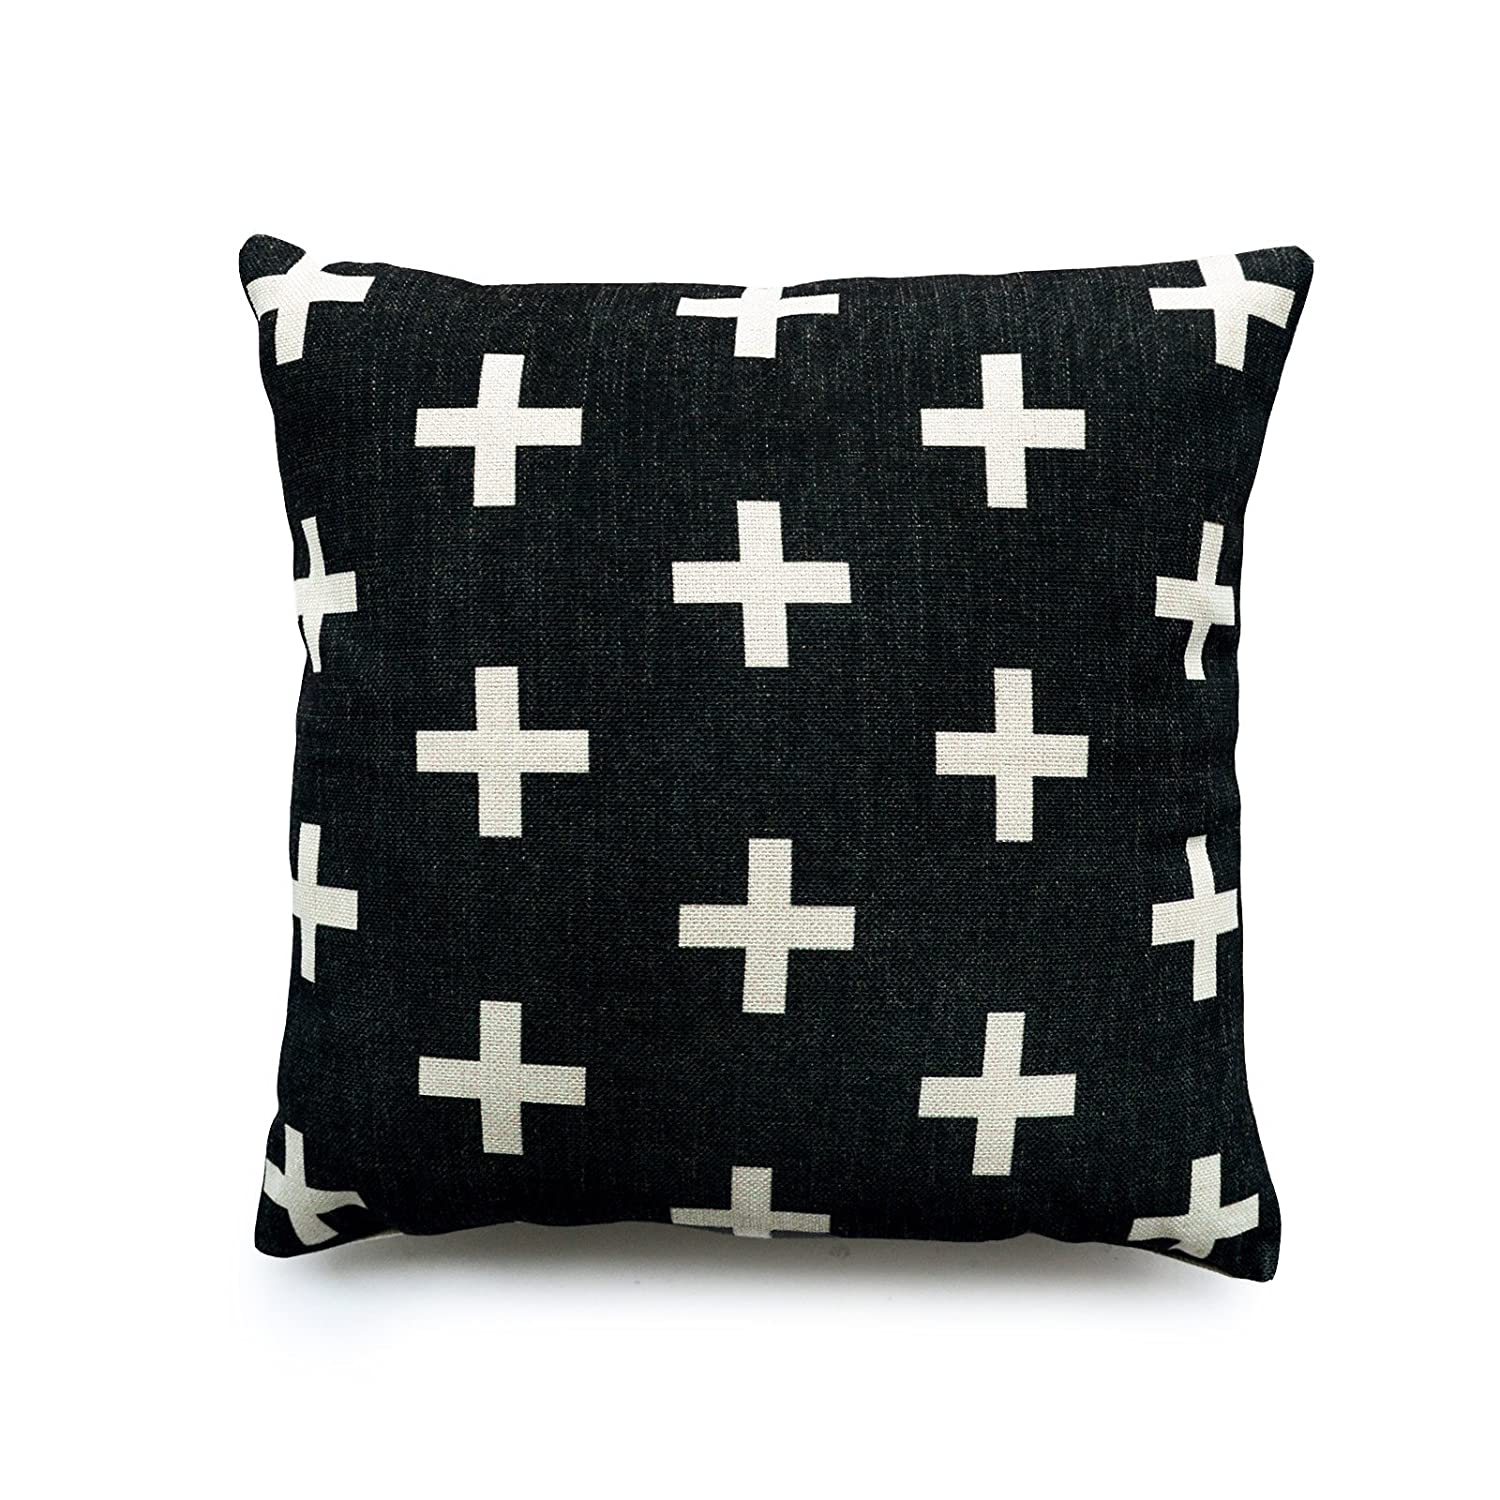 Charcoal Grey Cotton Linen Cross Pillow